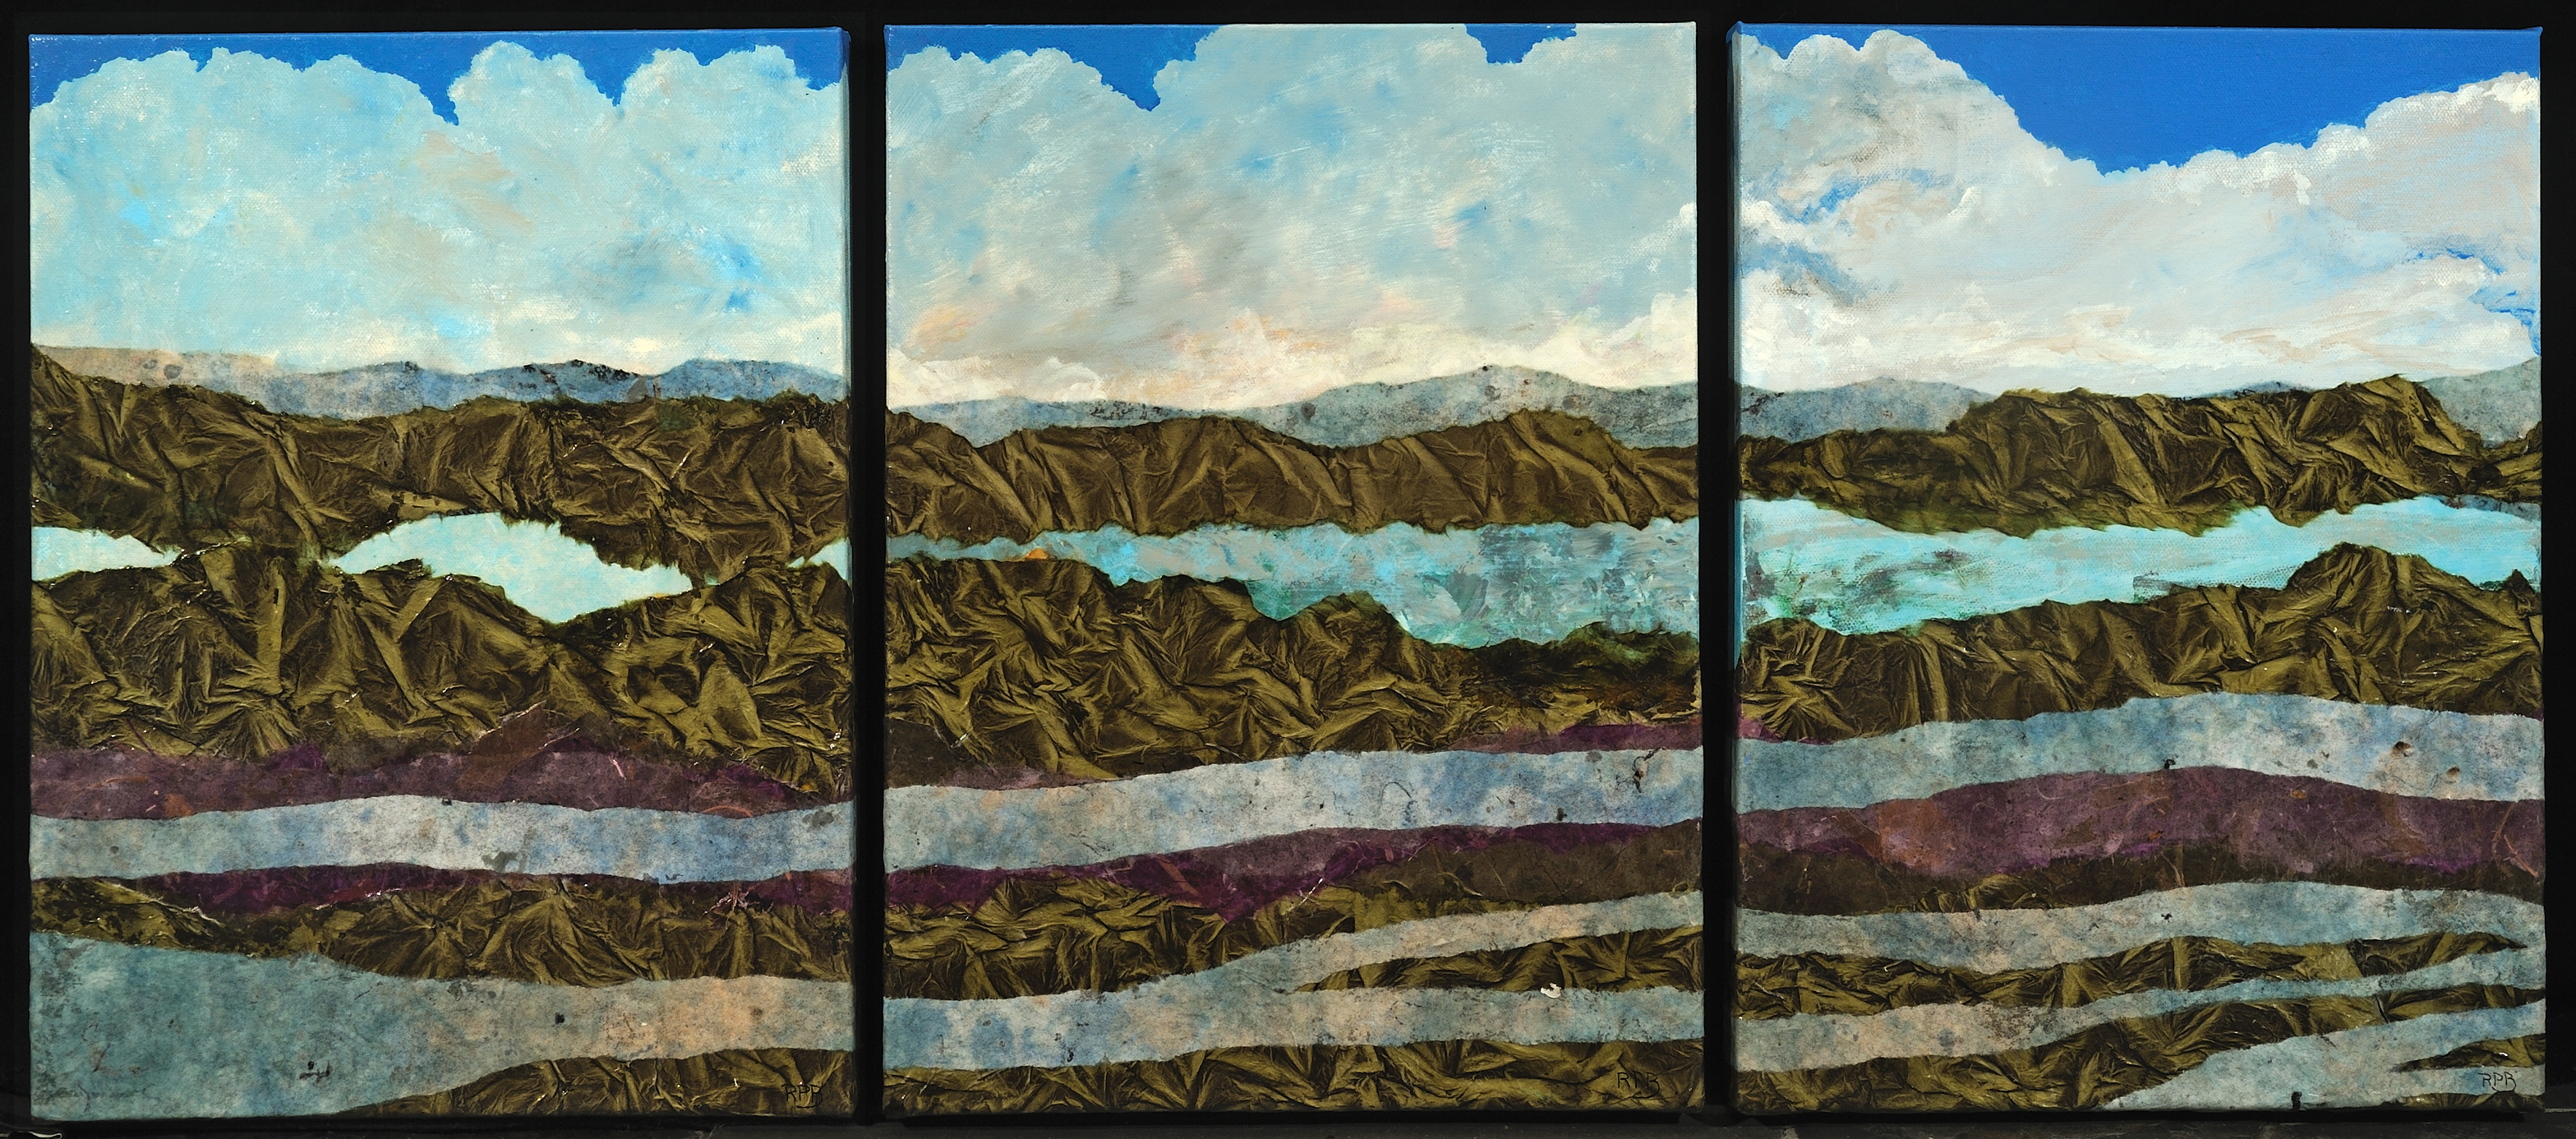 """Running to the Sea"" - 12"" x 16"" [x 3 pieces]Mixed Media on Canvas"